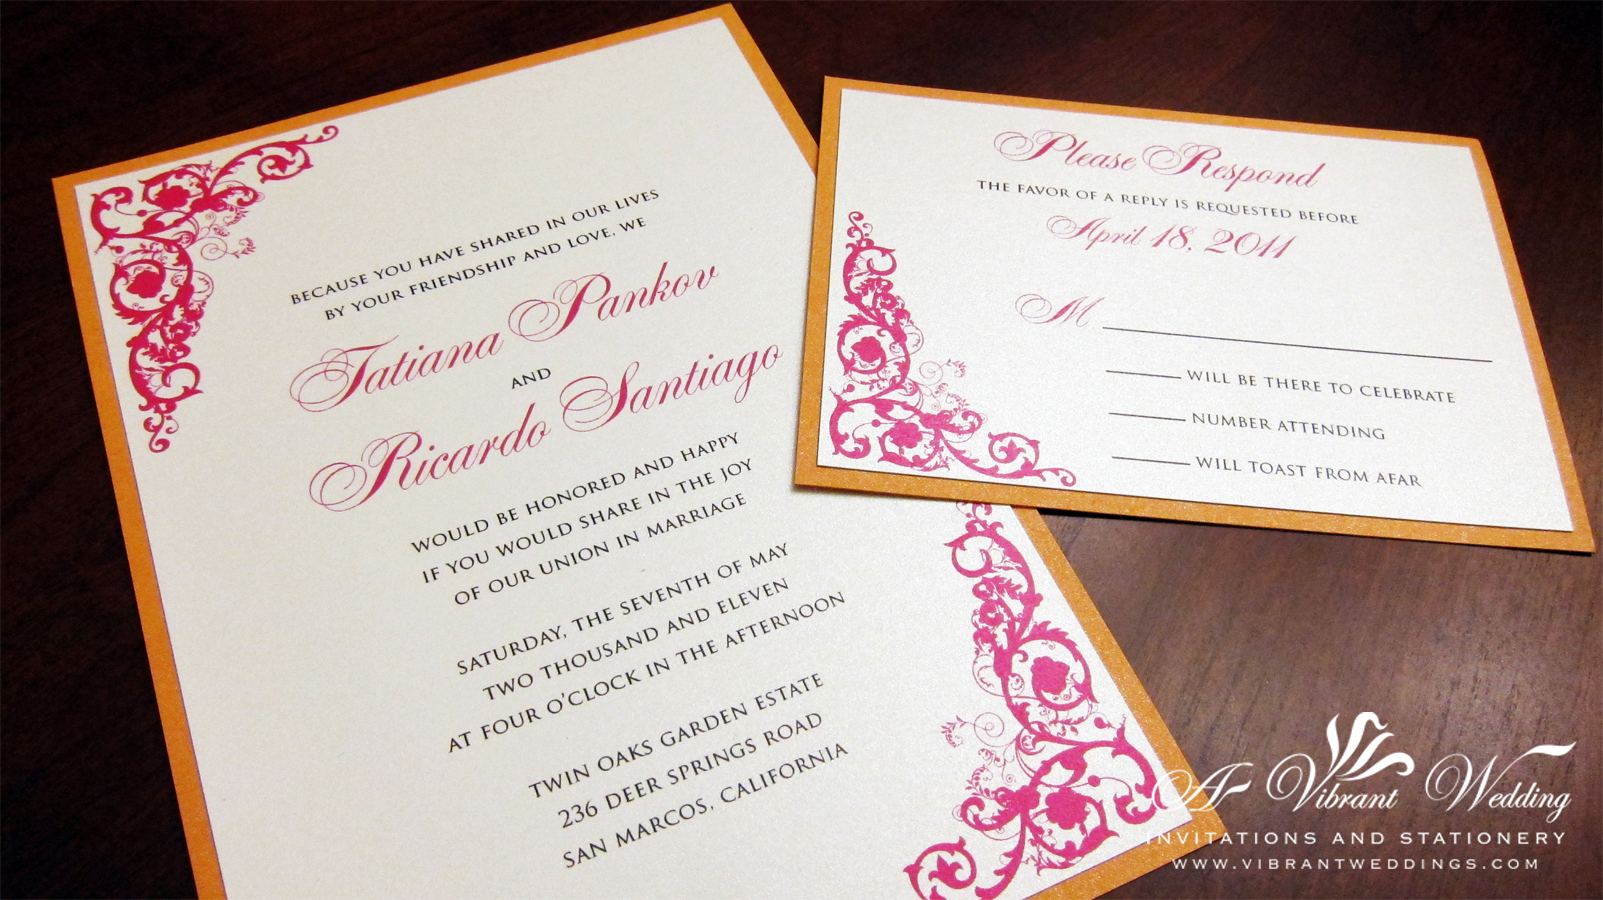 Wed Pinkorange Flatcornerfloral Blog invitation templates